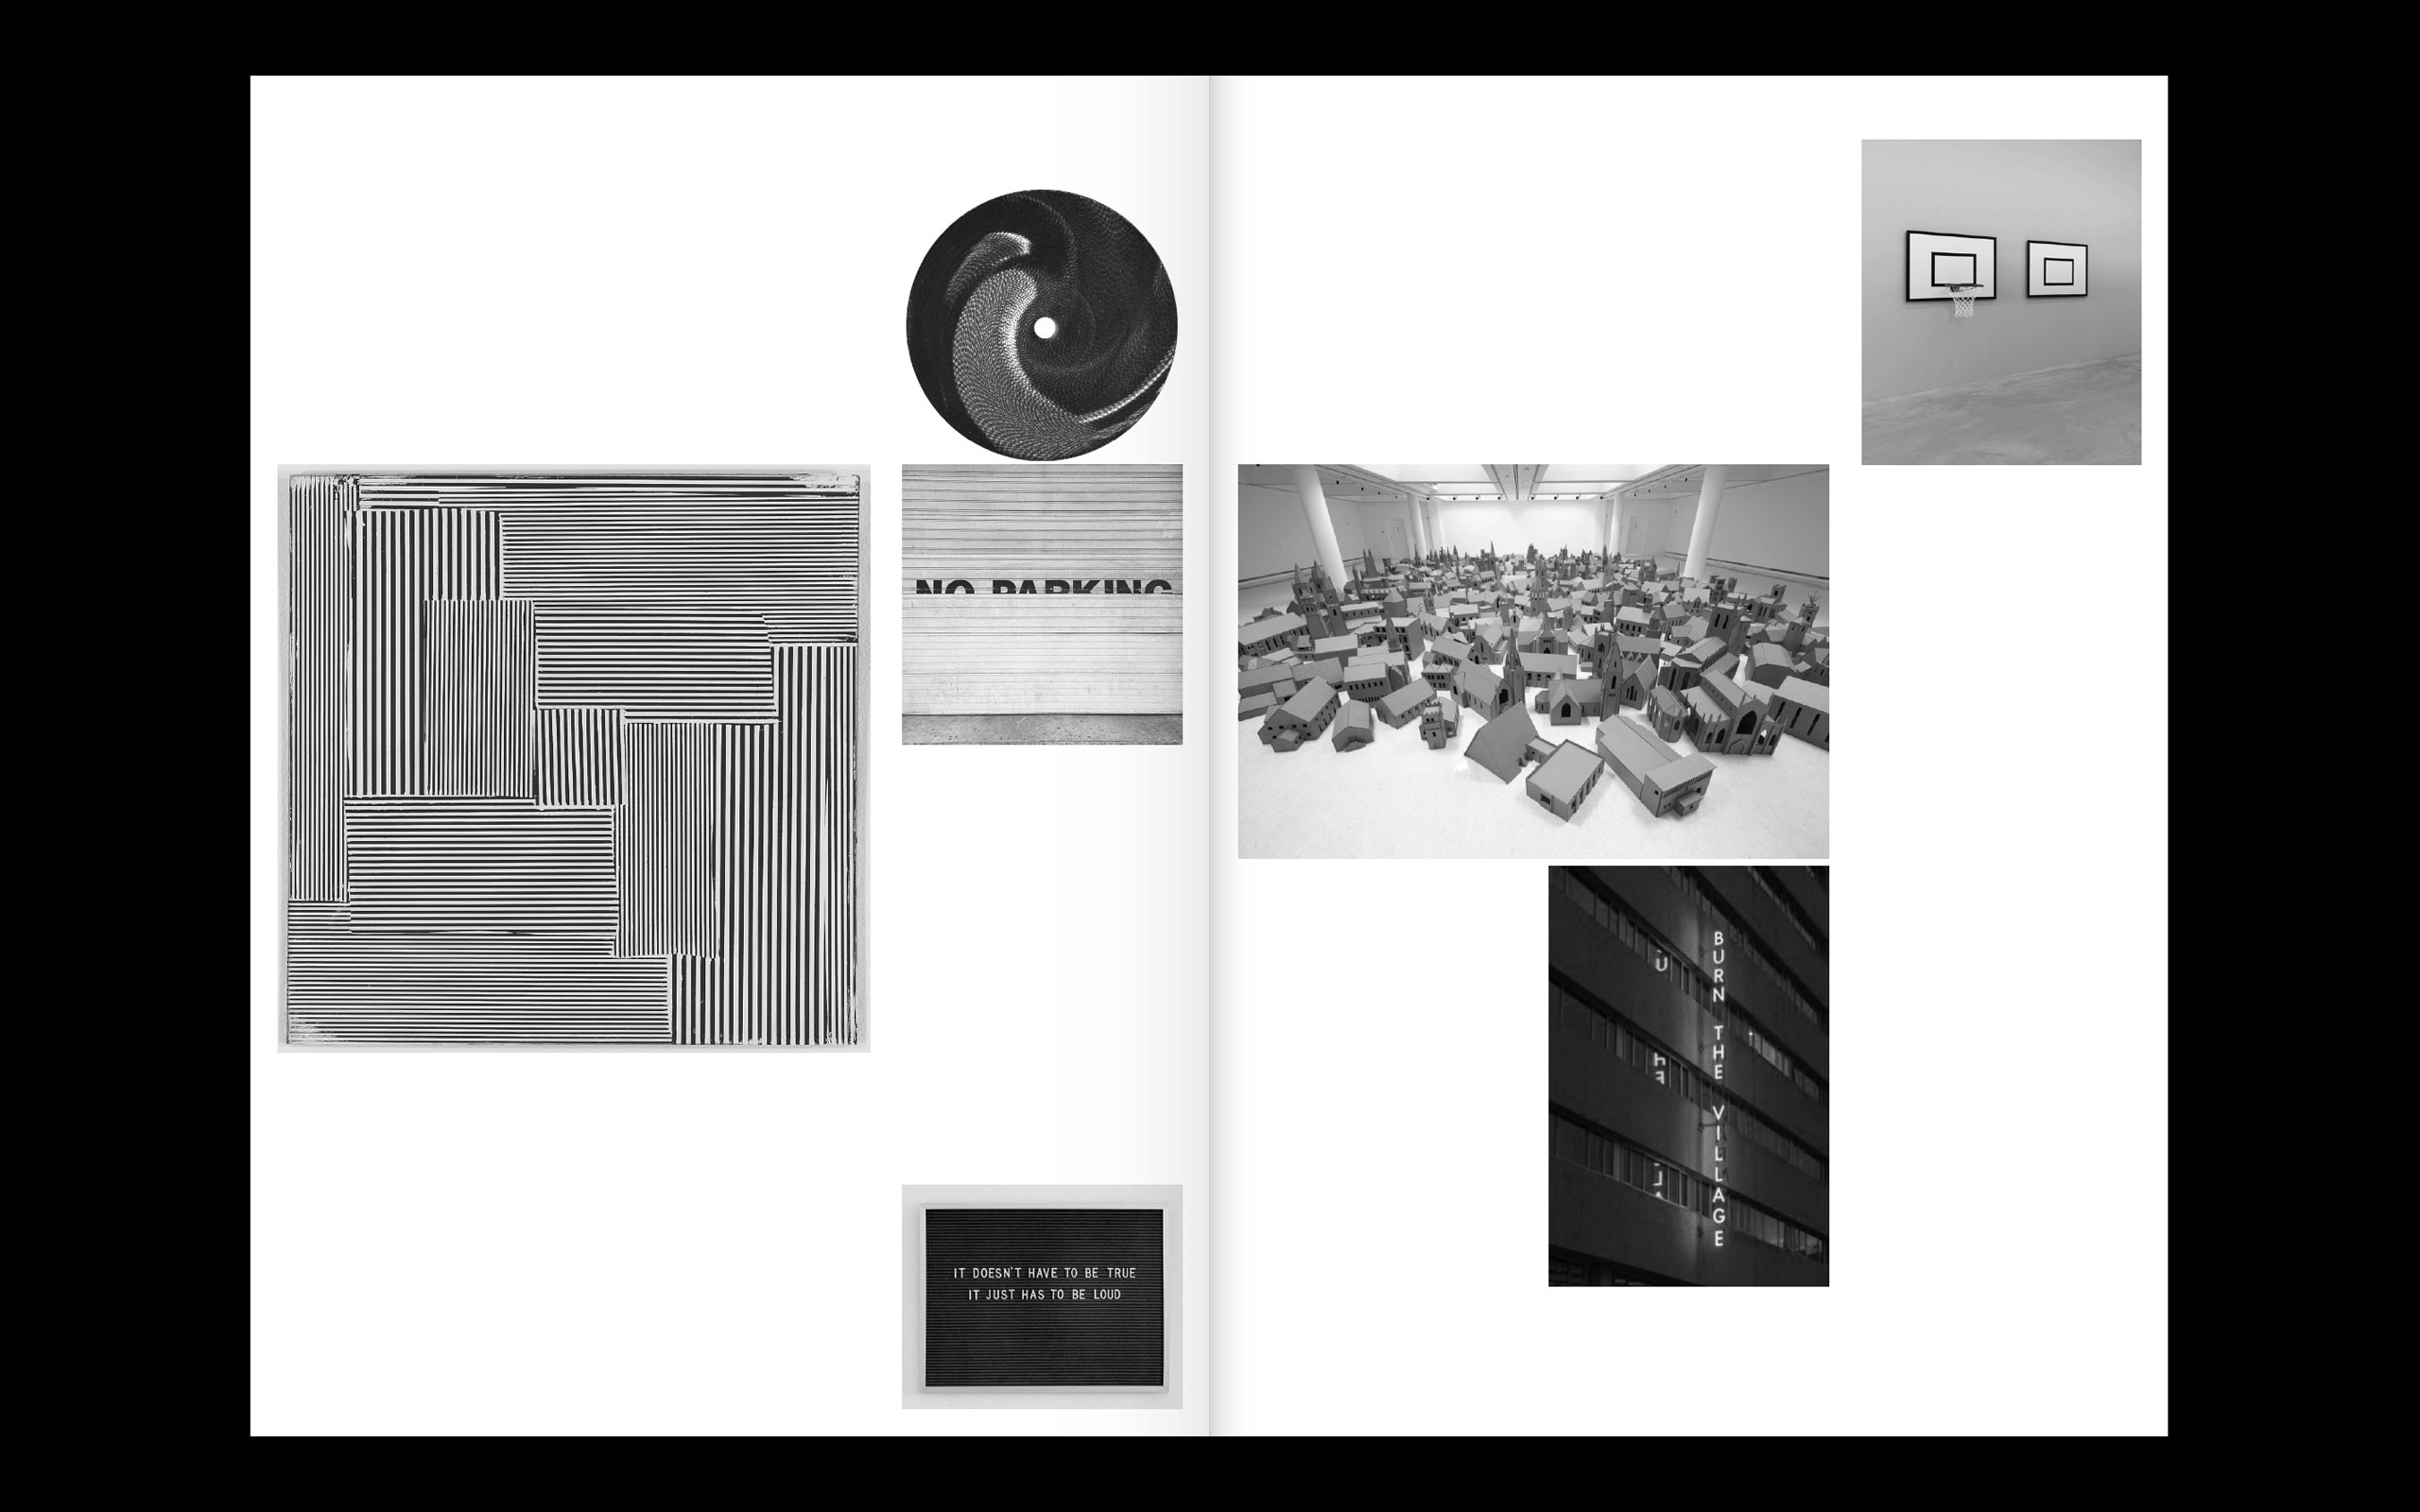 #laurajouan Serial Things ADS4 project, publication, Architecture Department at the Royal College of Art 2016